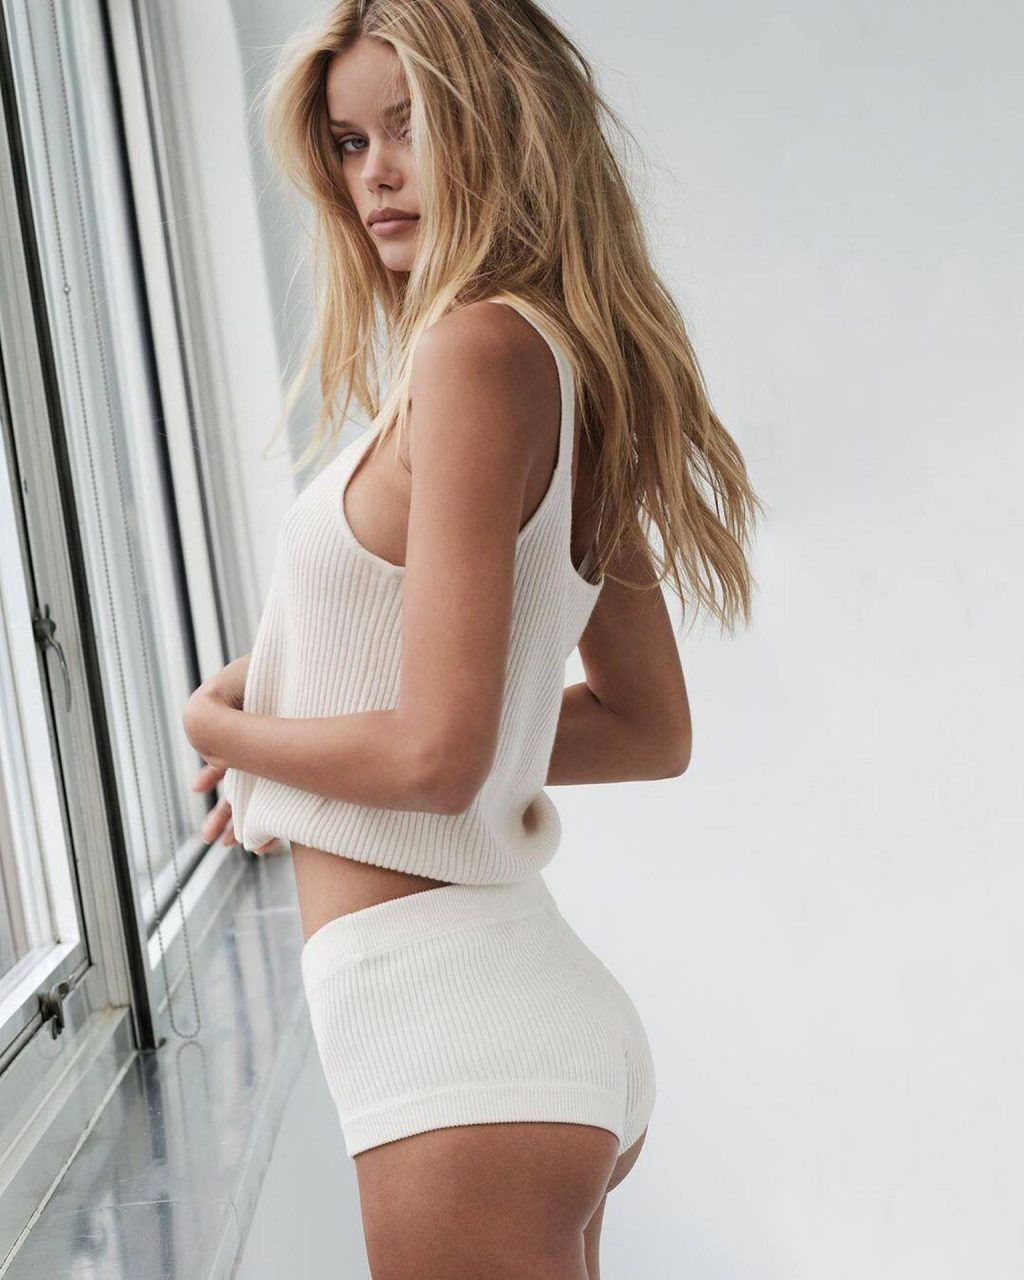 Frida Aasen Sexy – Naked Cashmere Spring 2020 Campaign (8 Photos)